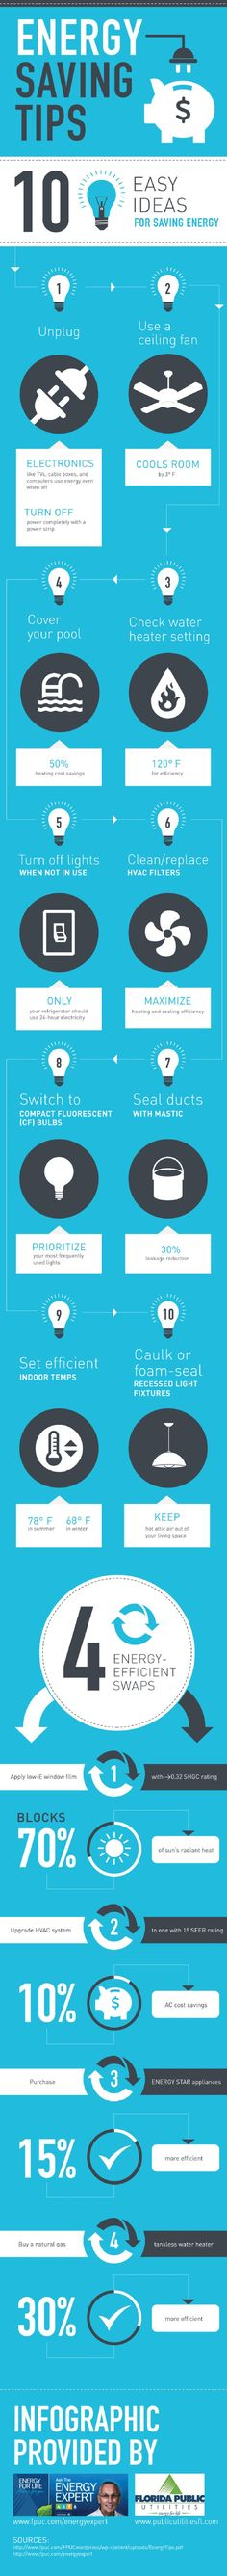 Setting your water heater at 120° F can help maximize your home's efficiency. To save even more, make the switch to a natural gas tankless water heater. For more energy-saving tips, check out this infographic from an energy company in West Palm Beach.